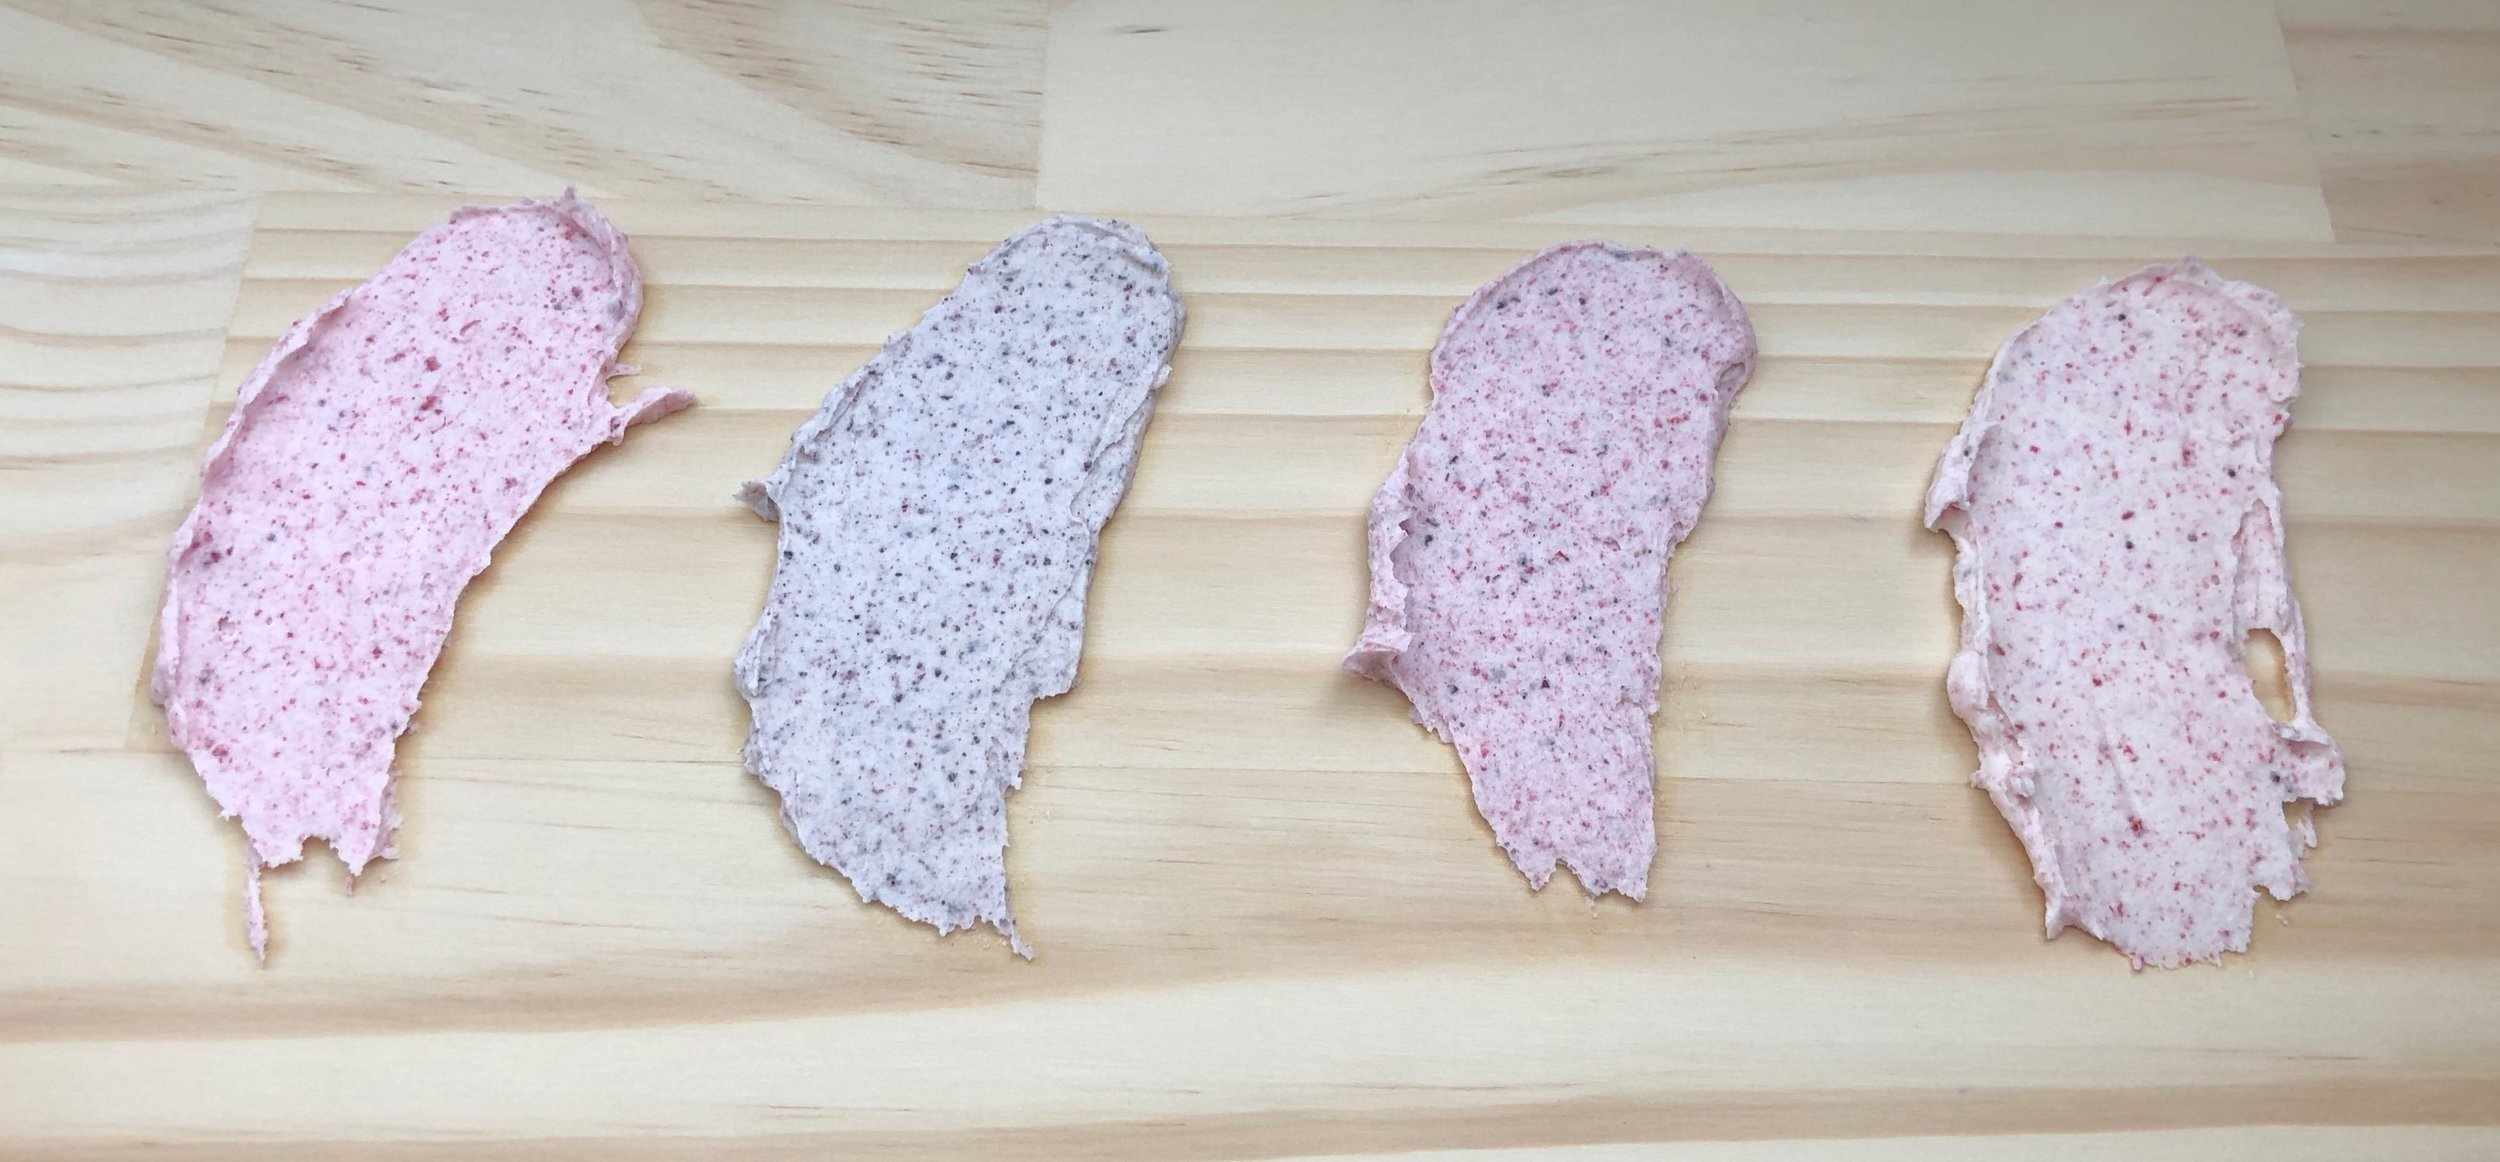 Berry Fresh in Buttercream! L-R: Strawberry, Blueberry, Mixed Berry, and Raspberry. 1 Tablespoon of Basic Buttercream to 1 Teaspoon of Berry Fresh.